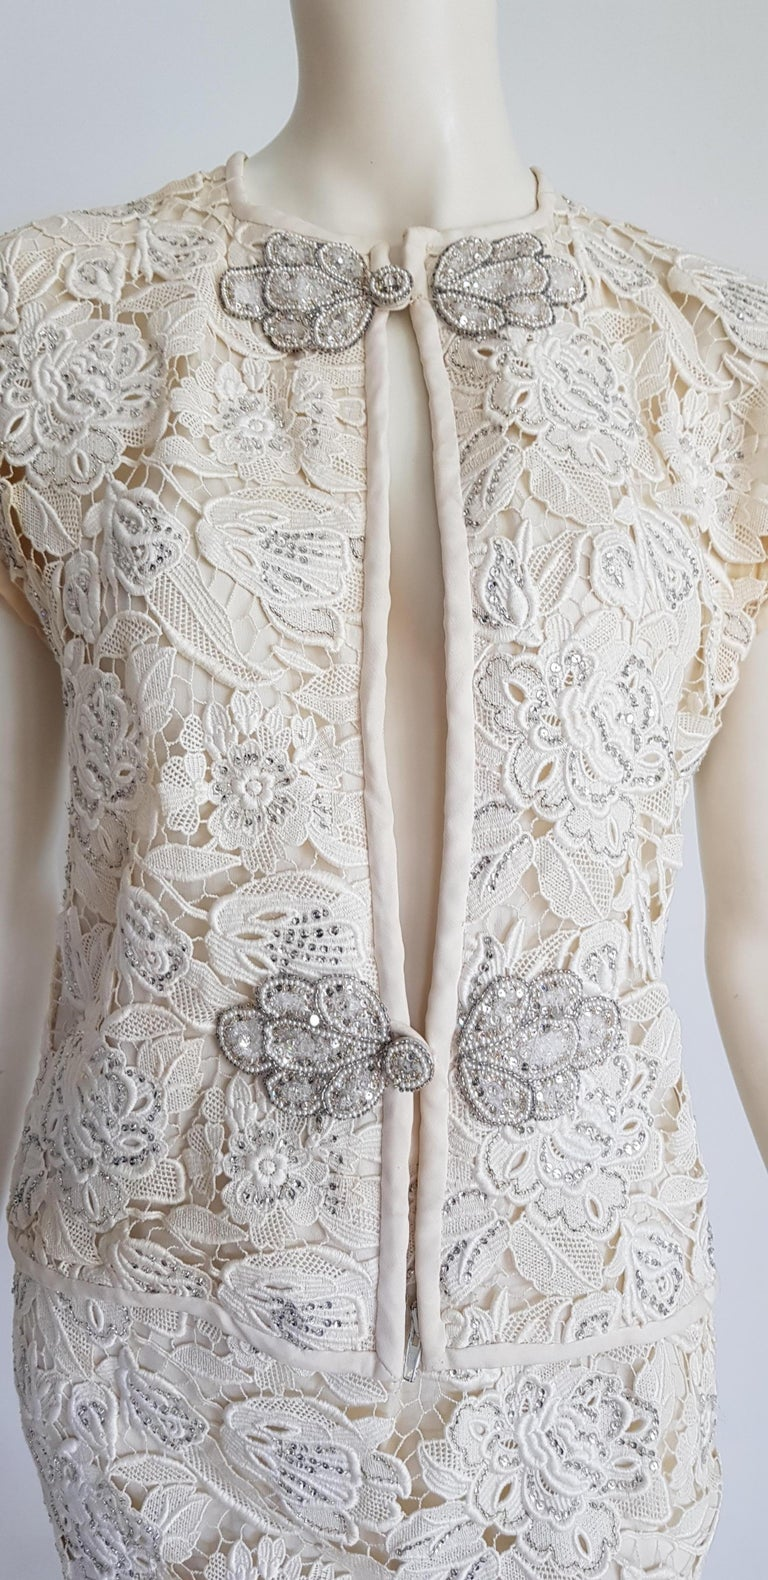 VALENTINO Haute Couture Swarovski Diamonds Embroidered Lace Beige Suit - Unworn For Sale 11